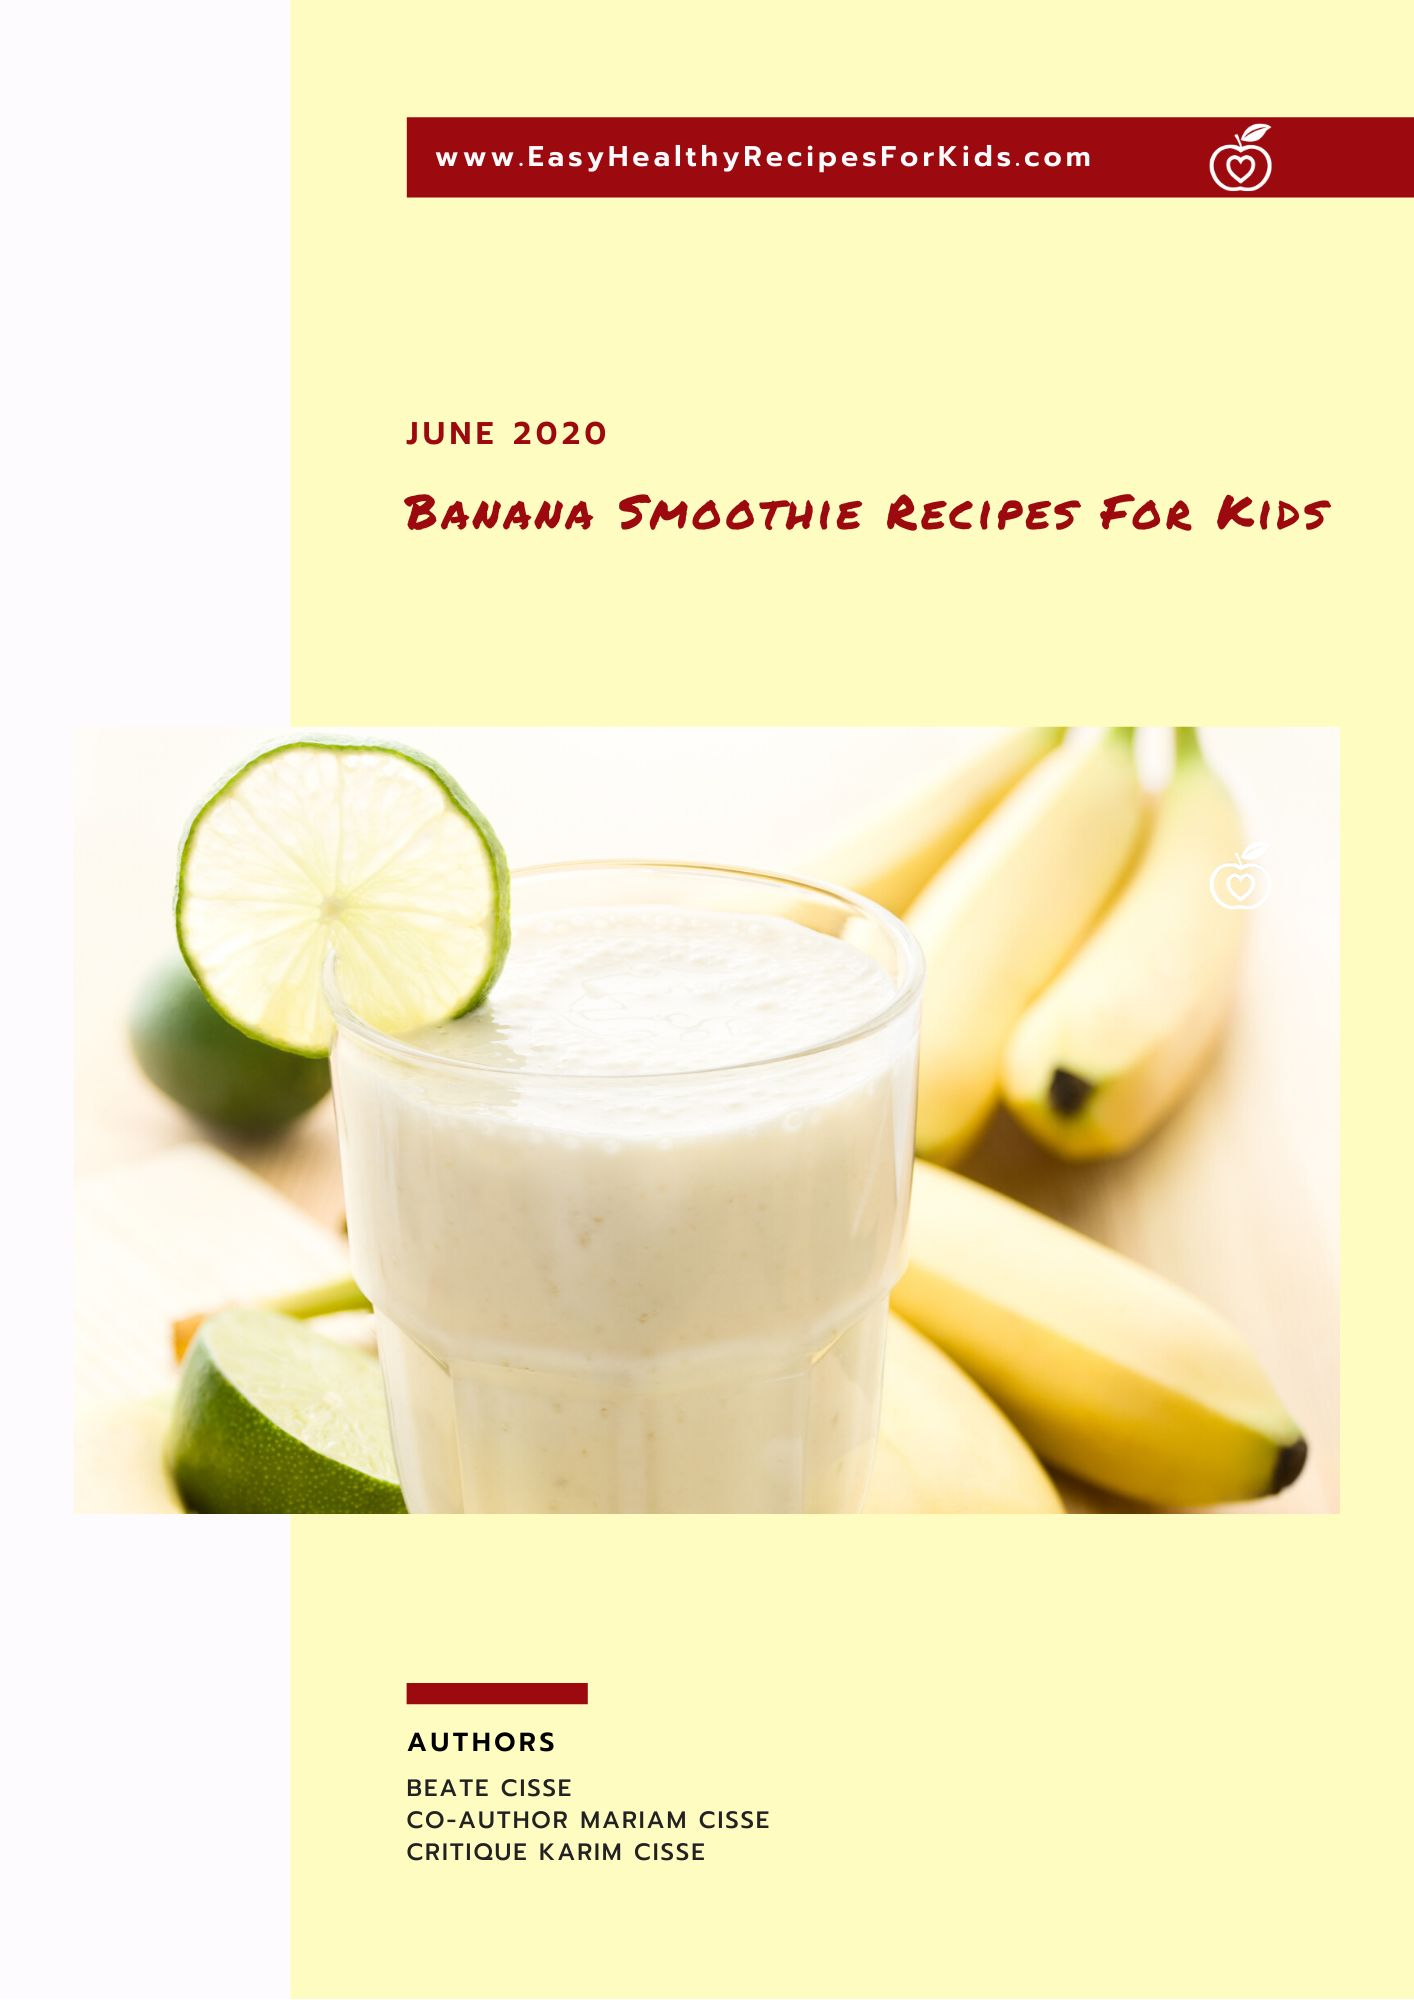 Banana Smoothies For Kids Booklet Cover